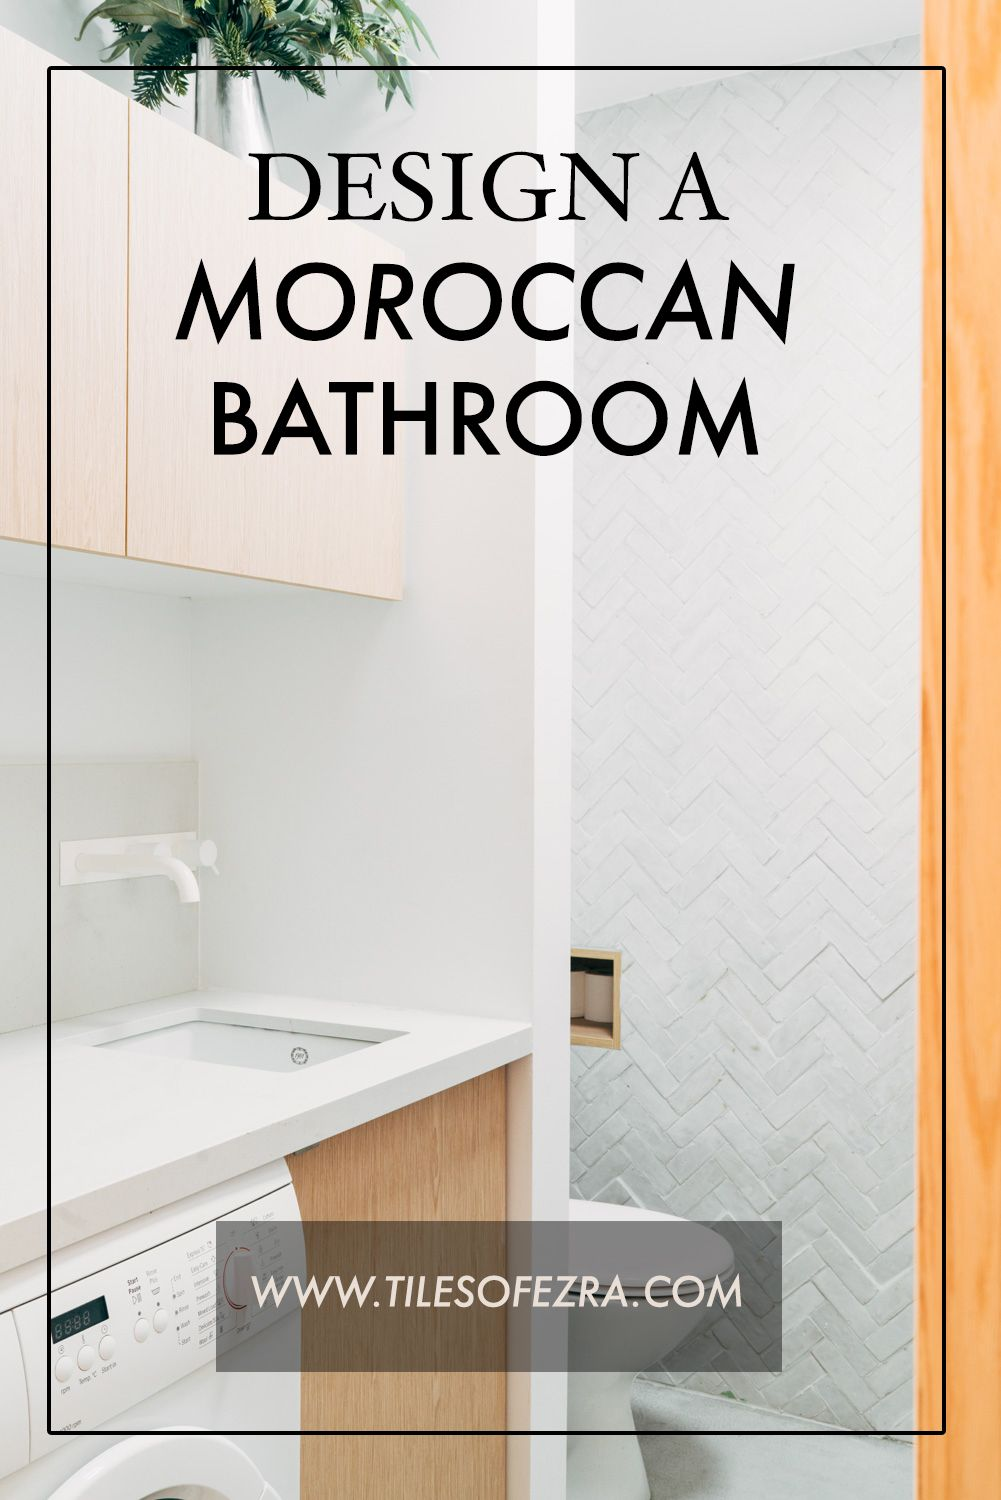 Design a gorgeous moroccan bathroom head over to tiles of ezra to design a gorgeous moroccan bathroom head over to tiles of ezra to see our incredible dailygadgetfo Images